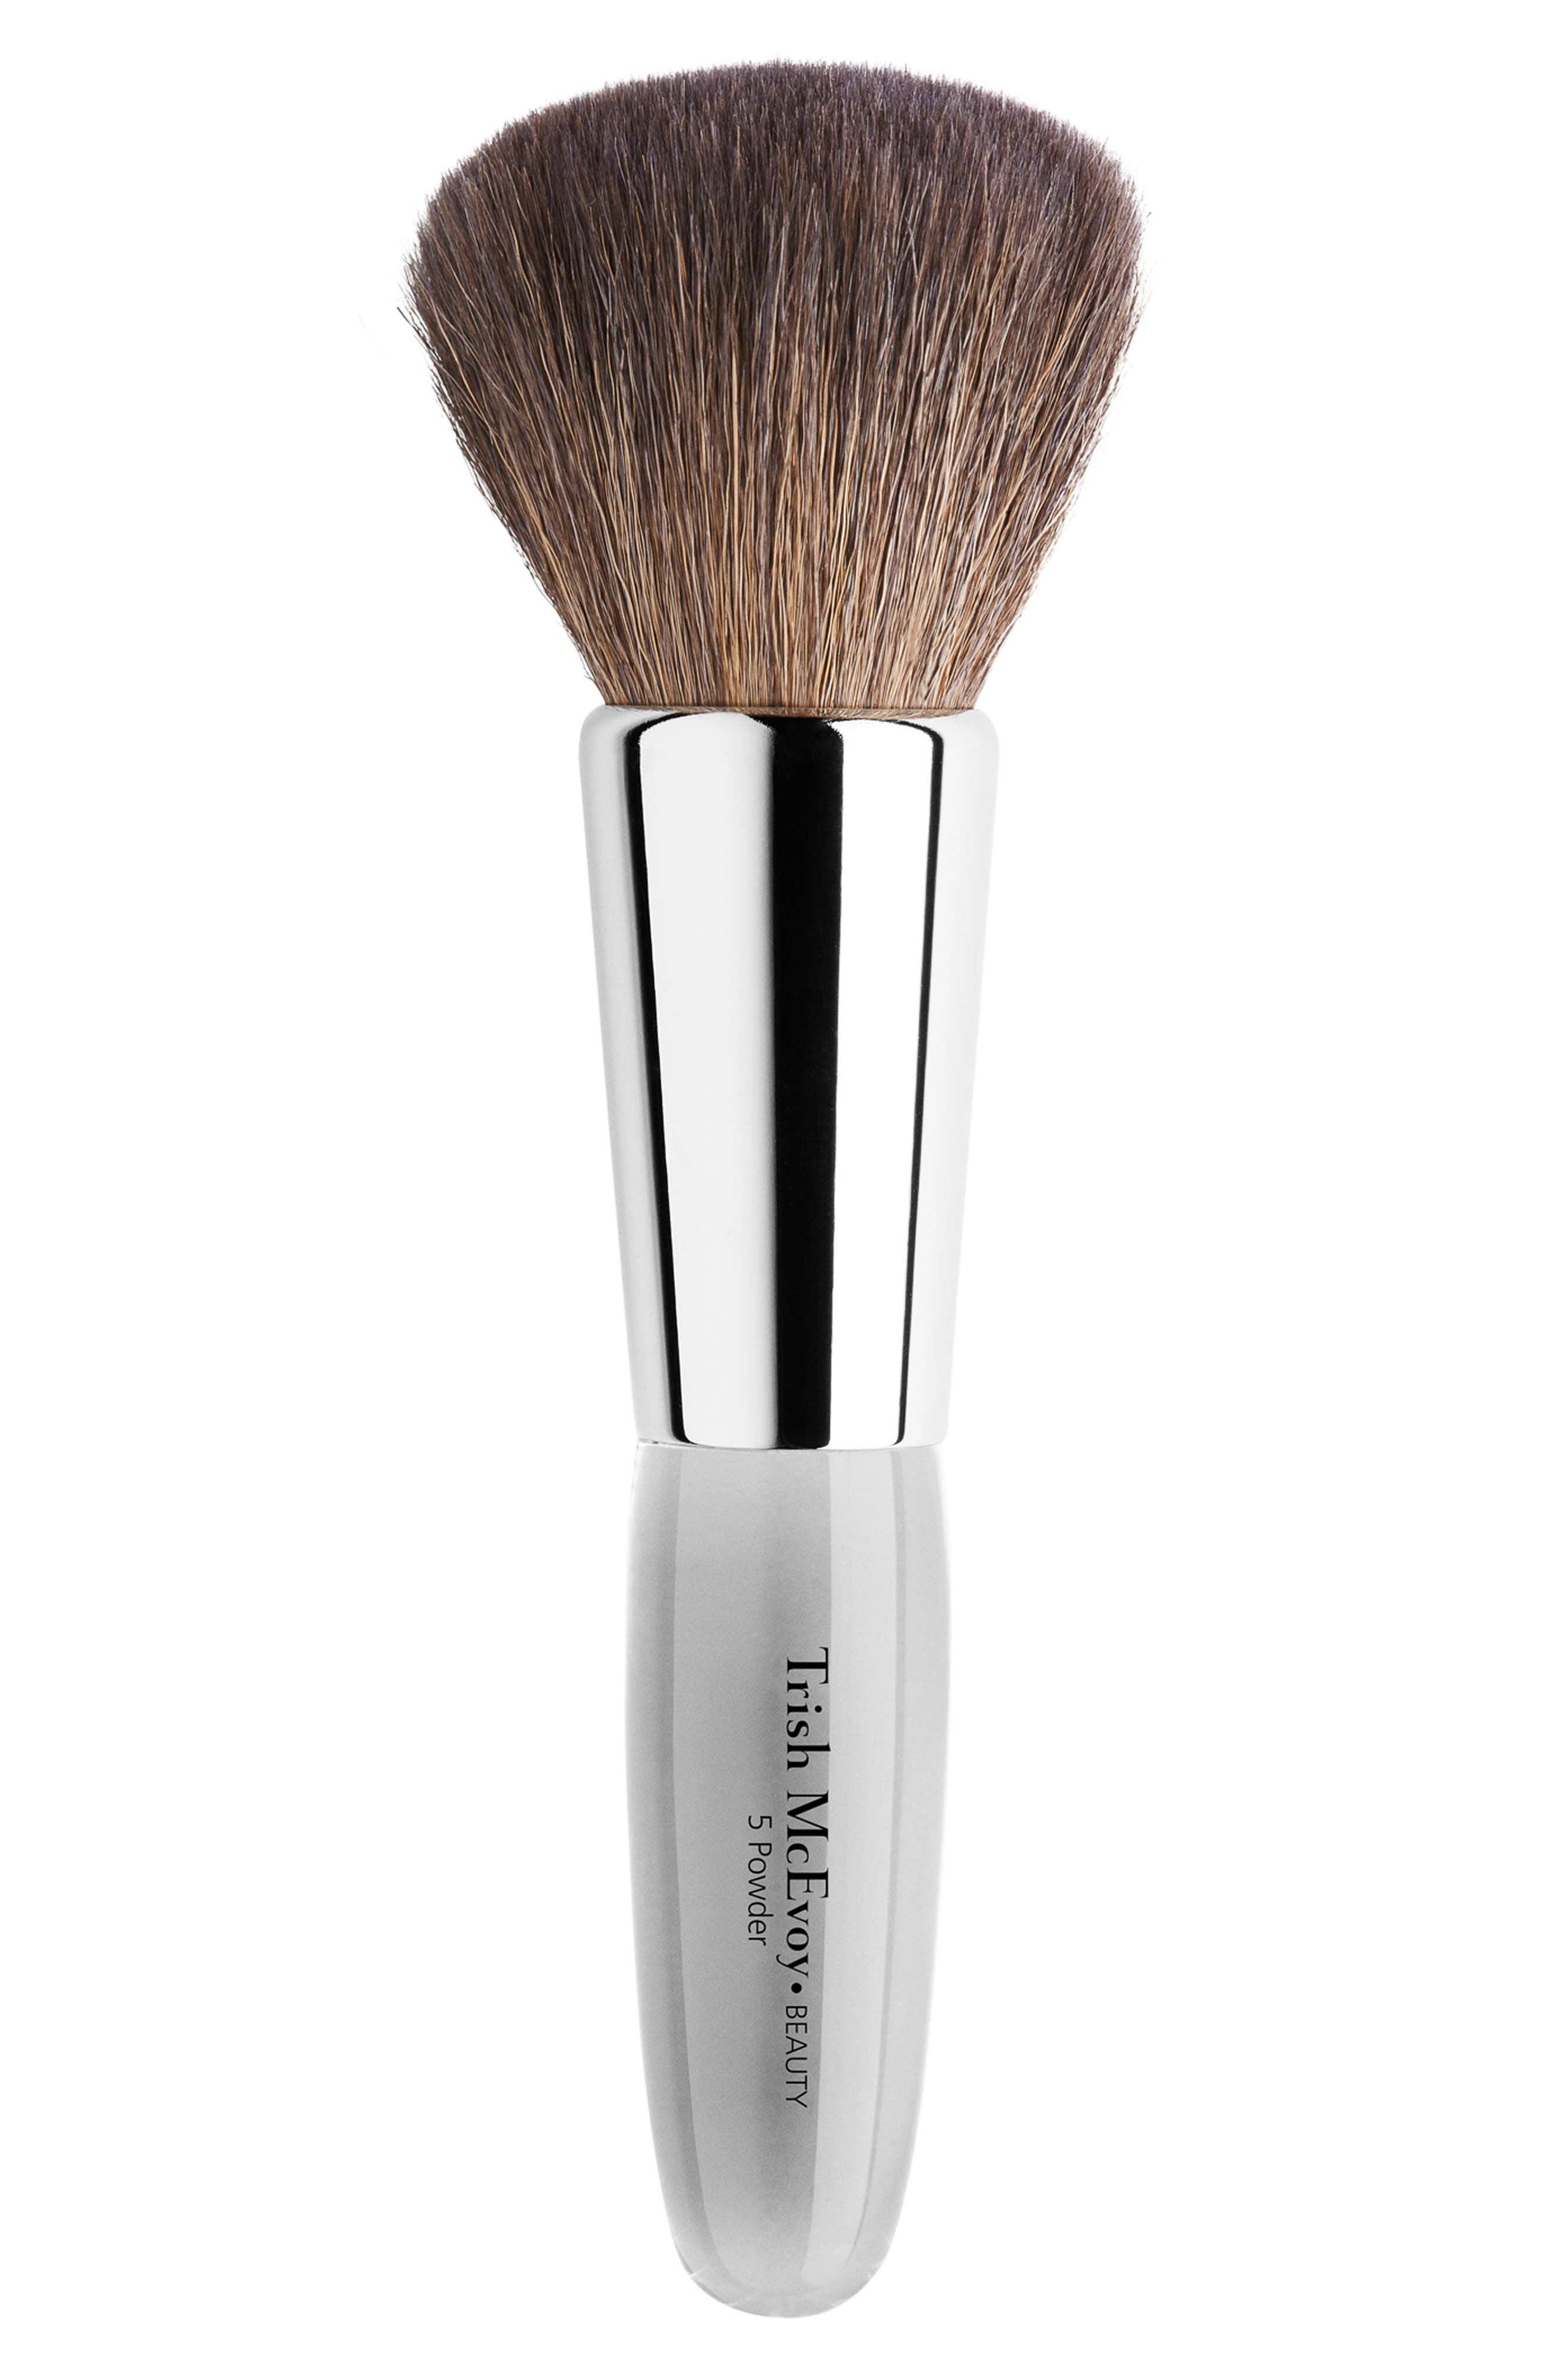 #5 Powder Brush,                         Main,                         color, No Color